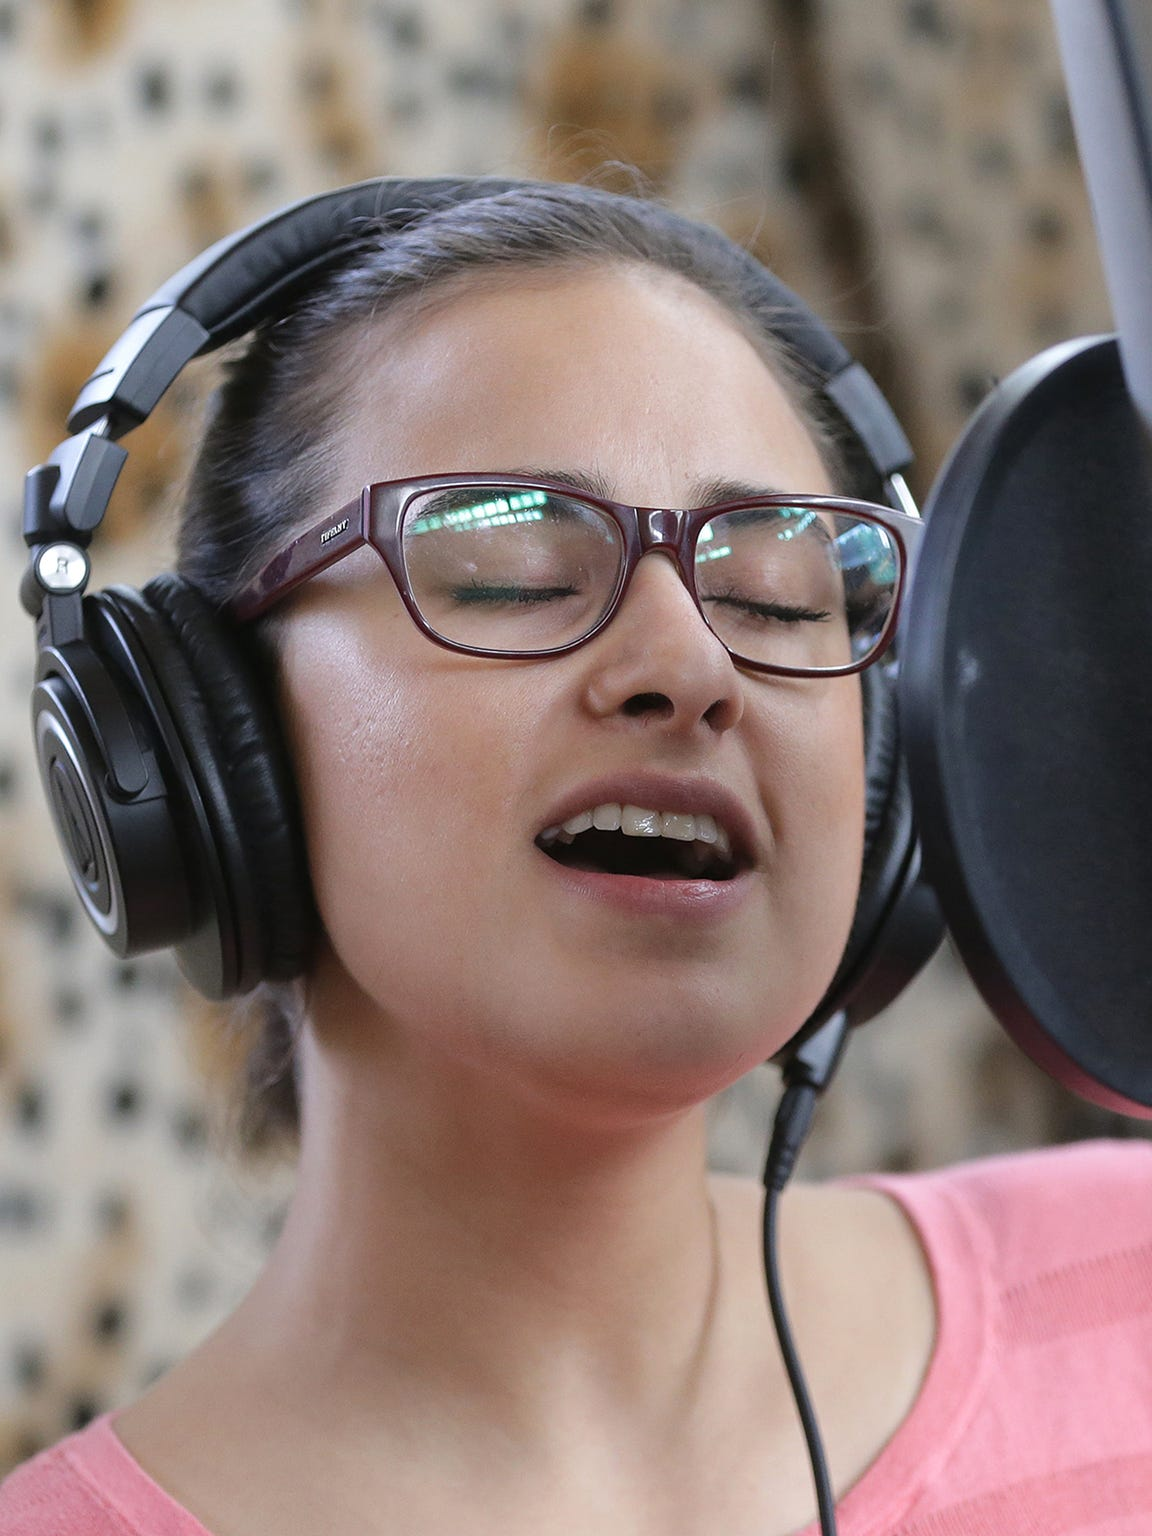 The Chamanas singer Paulina Reza belts out some vocals